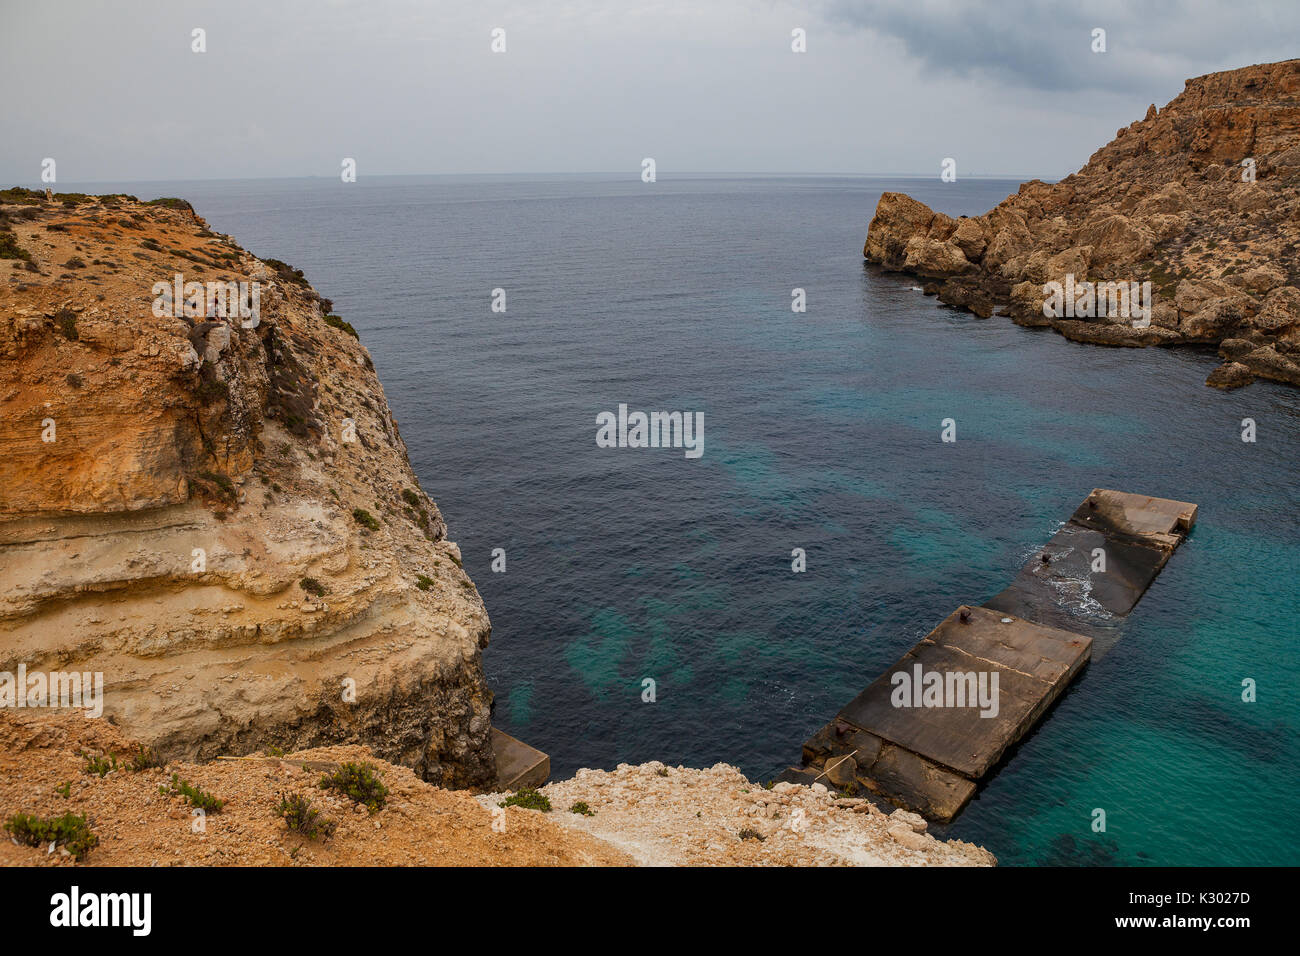 Famous Popeye village in Malta. Azure bay in the rocks. - Stock Image